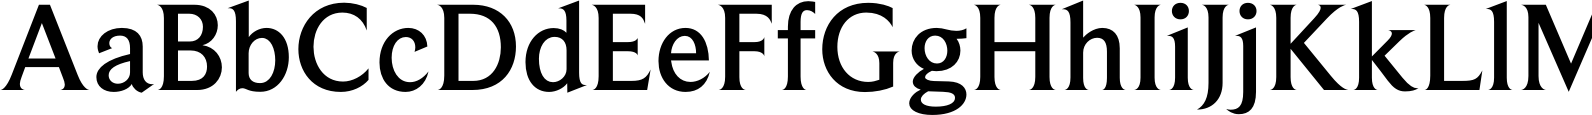 Beaufort Pro Medium Font